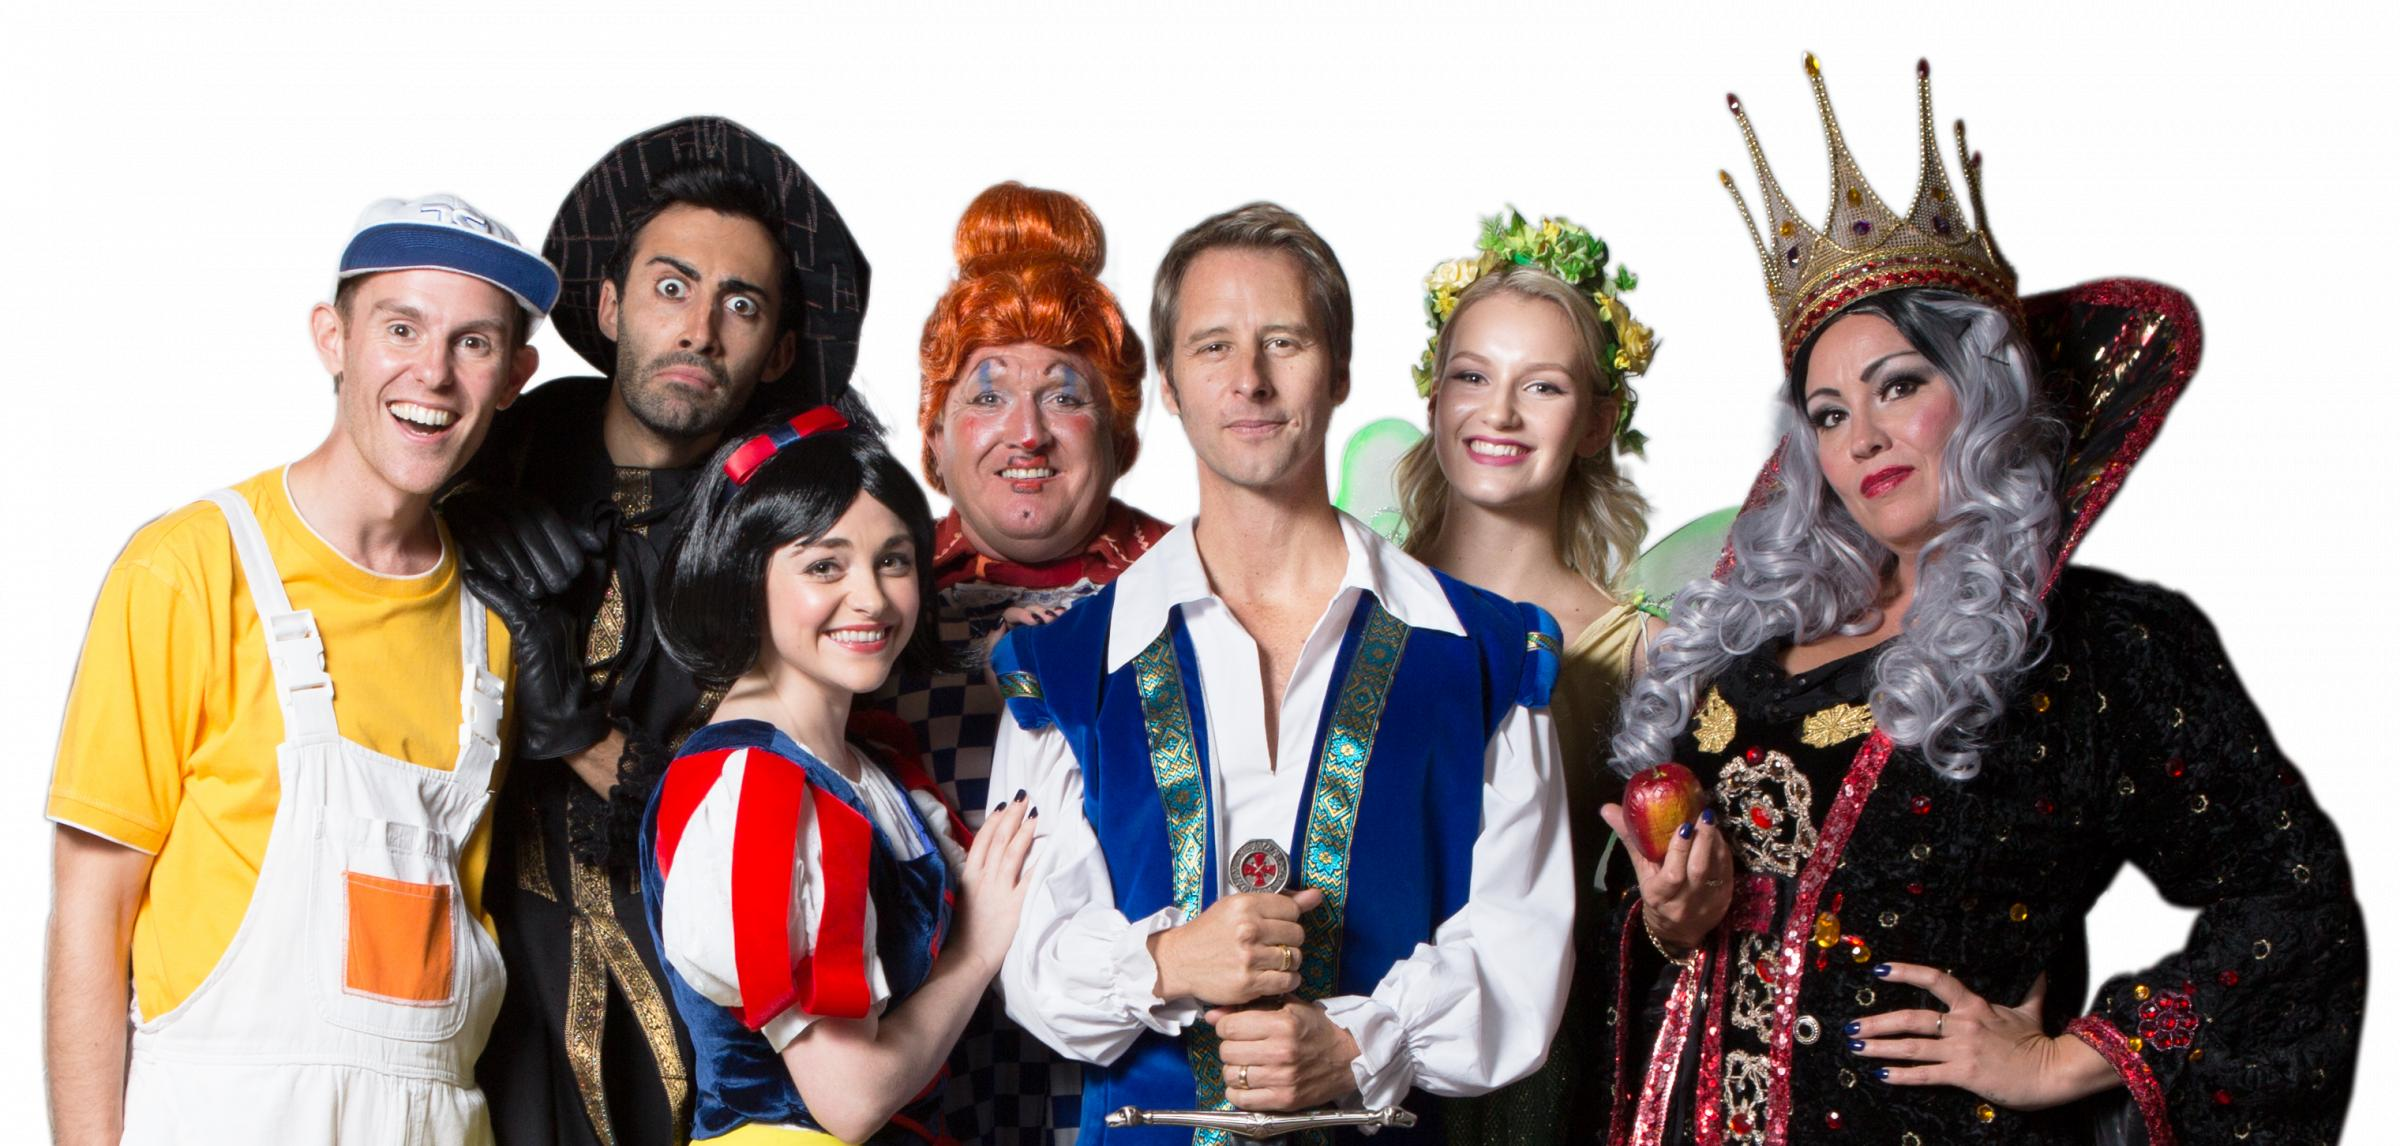 The Snow White cast with Chesney Hawkes at centre